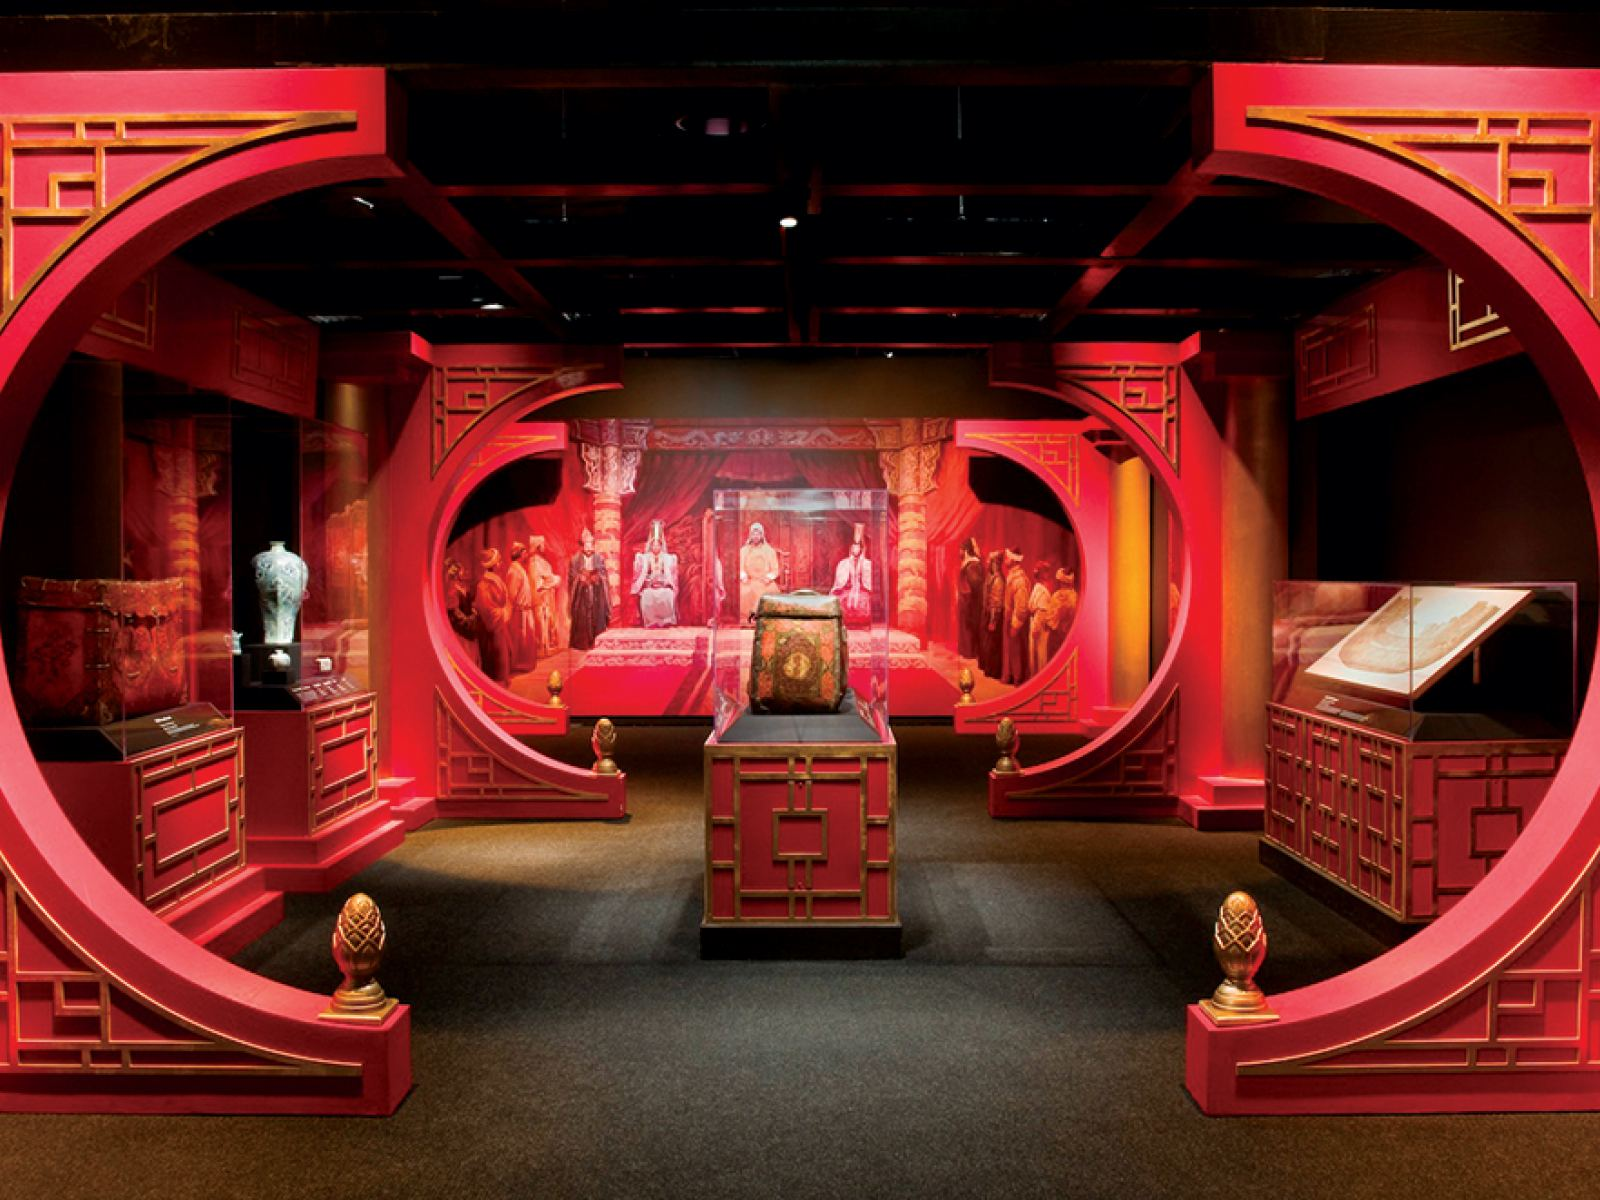 Main image for article titled Genghis Khan: The Exhibition at the Reagan Library